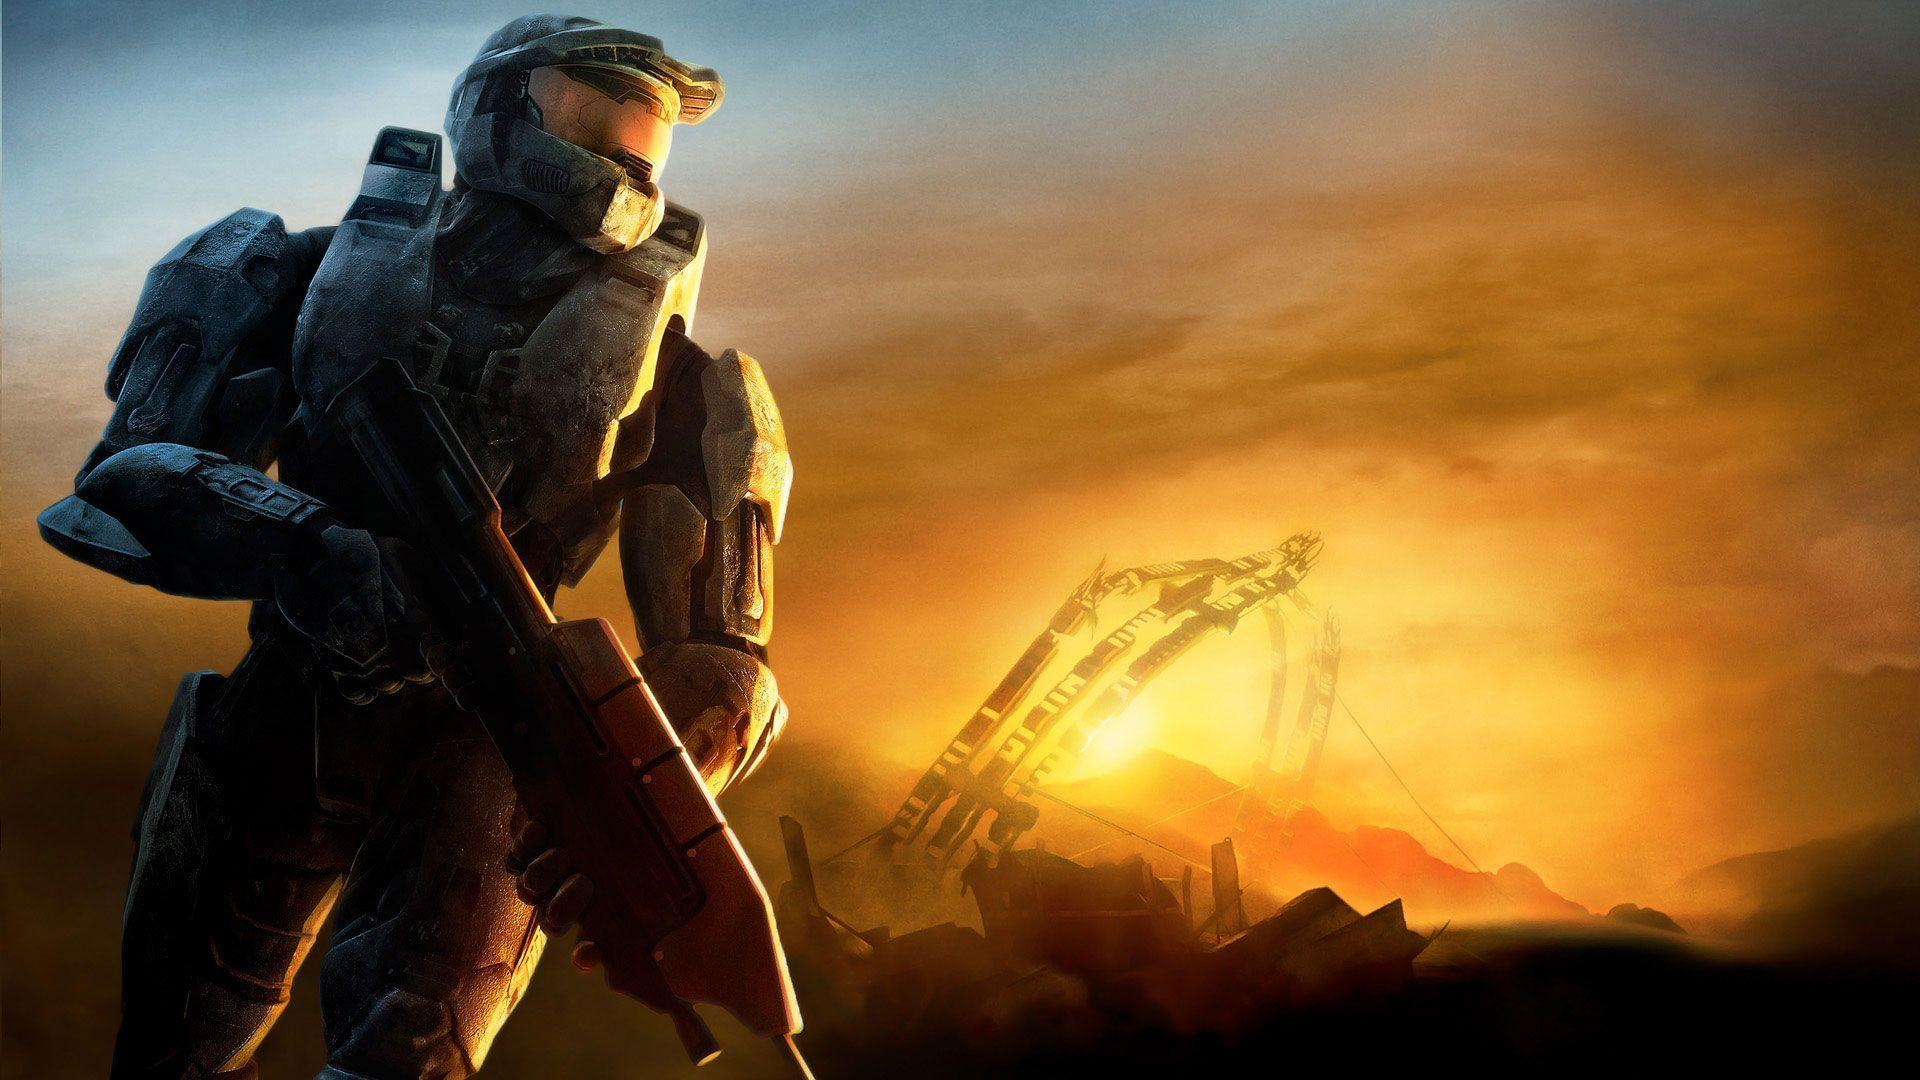 Cool Halo 3 Wallpapers Top Free Cool Halo 3 Backgrounds Wallpaperaccess